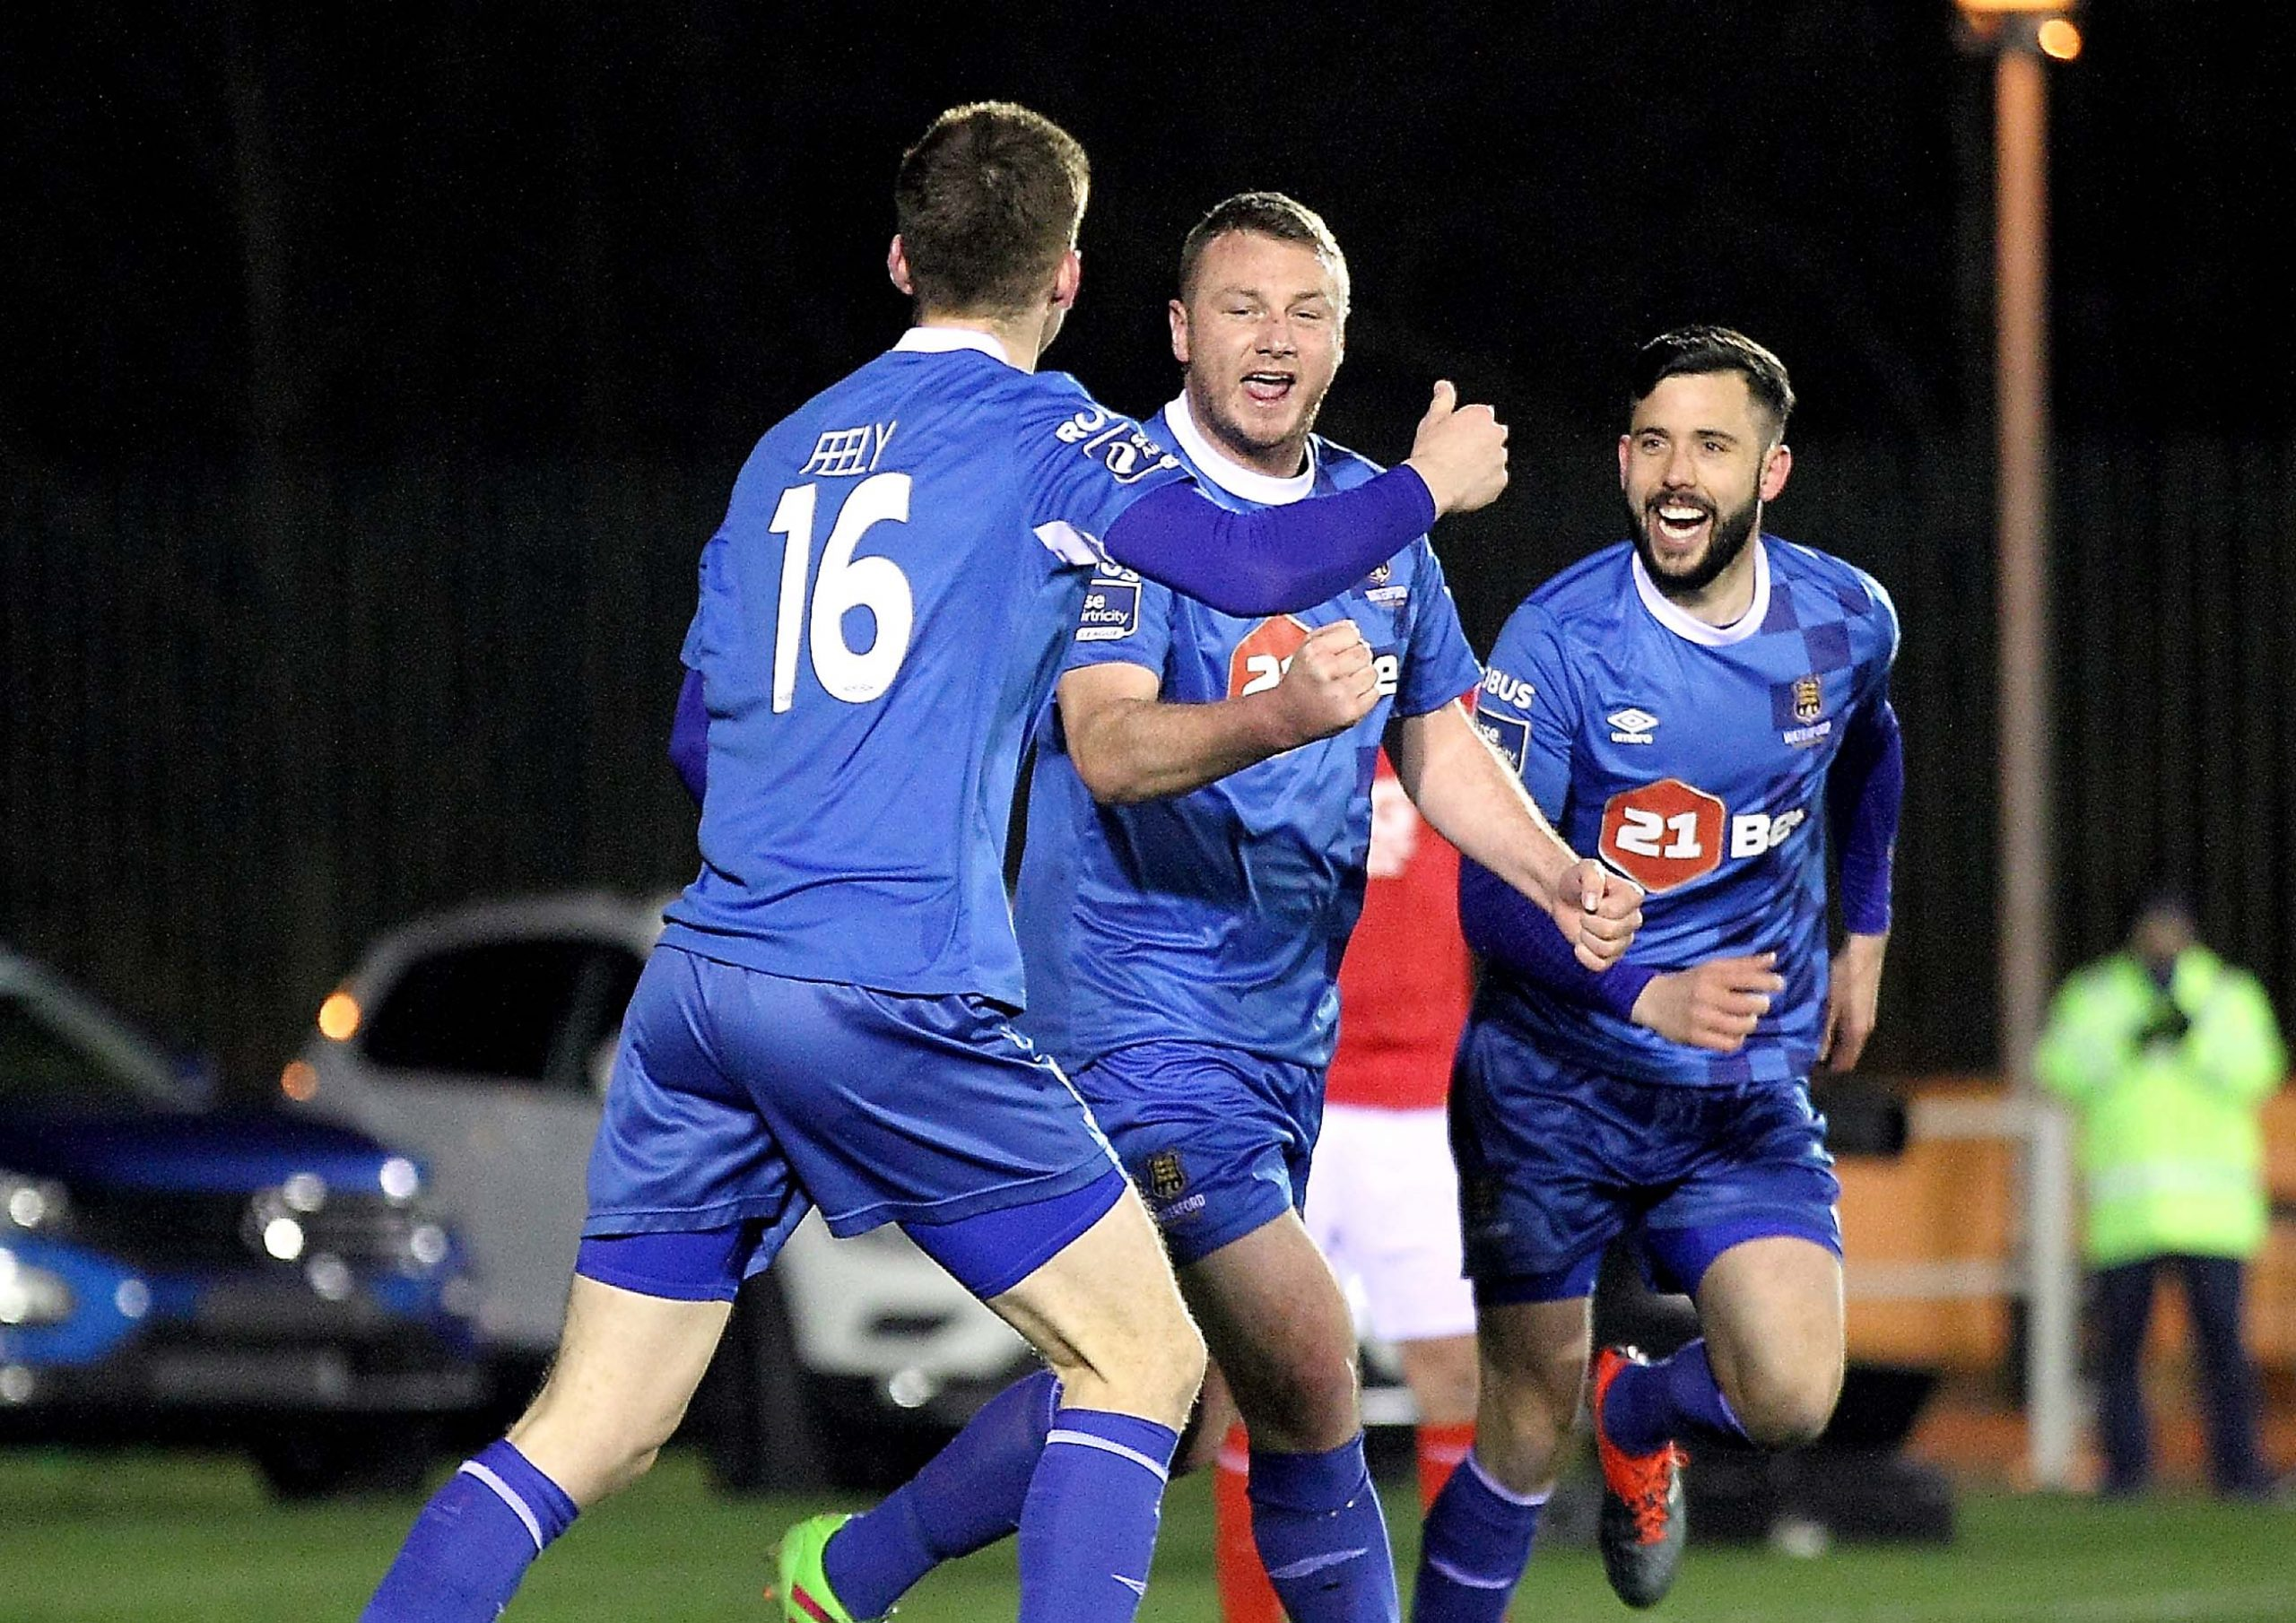 Waterford FC face Bohemians at the RSC this evening